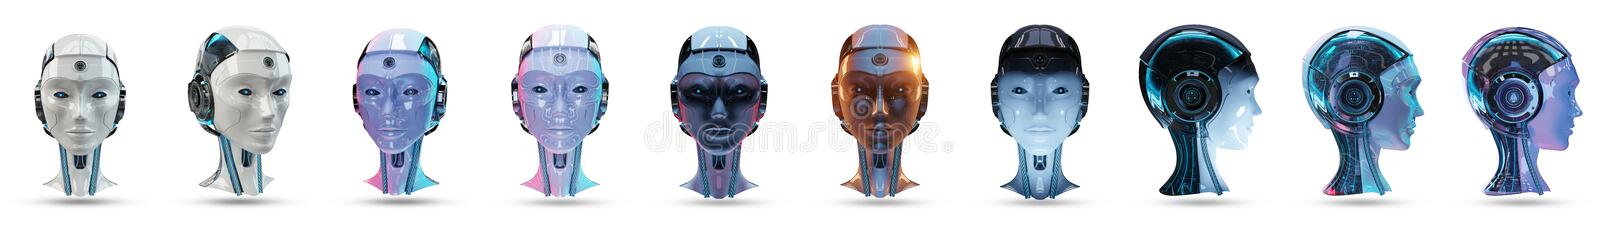 Cyborg head artificial intelligence pack 3D rendering vector illustration